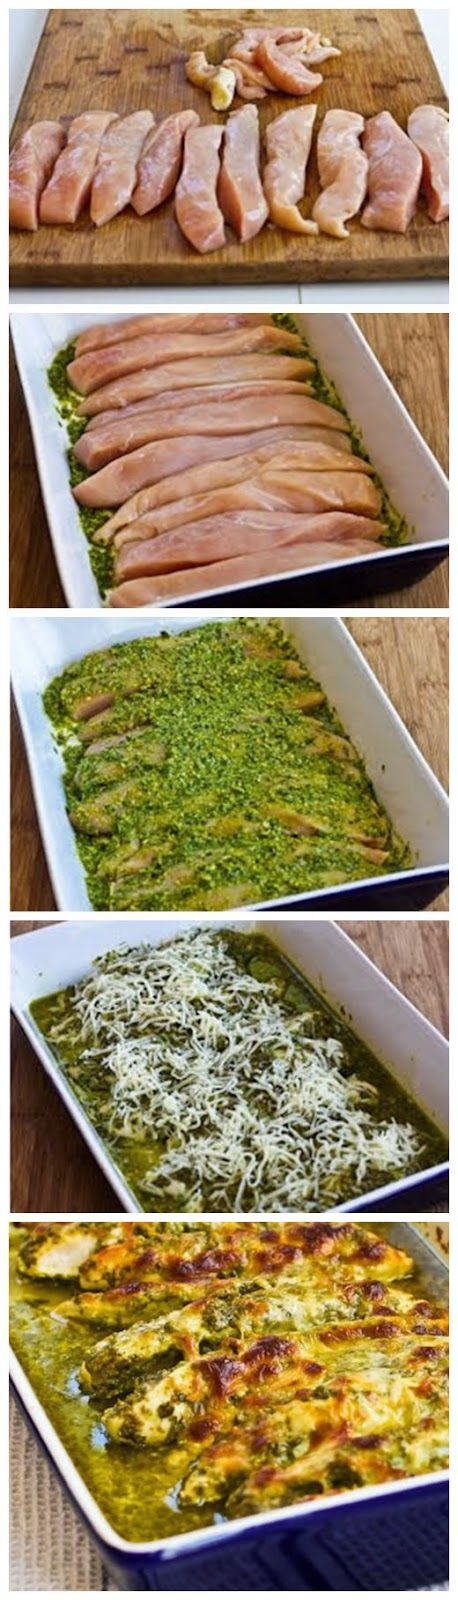 Baked Pesto Chicken